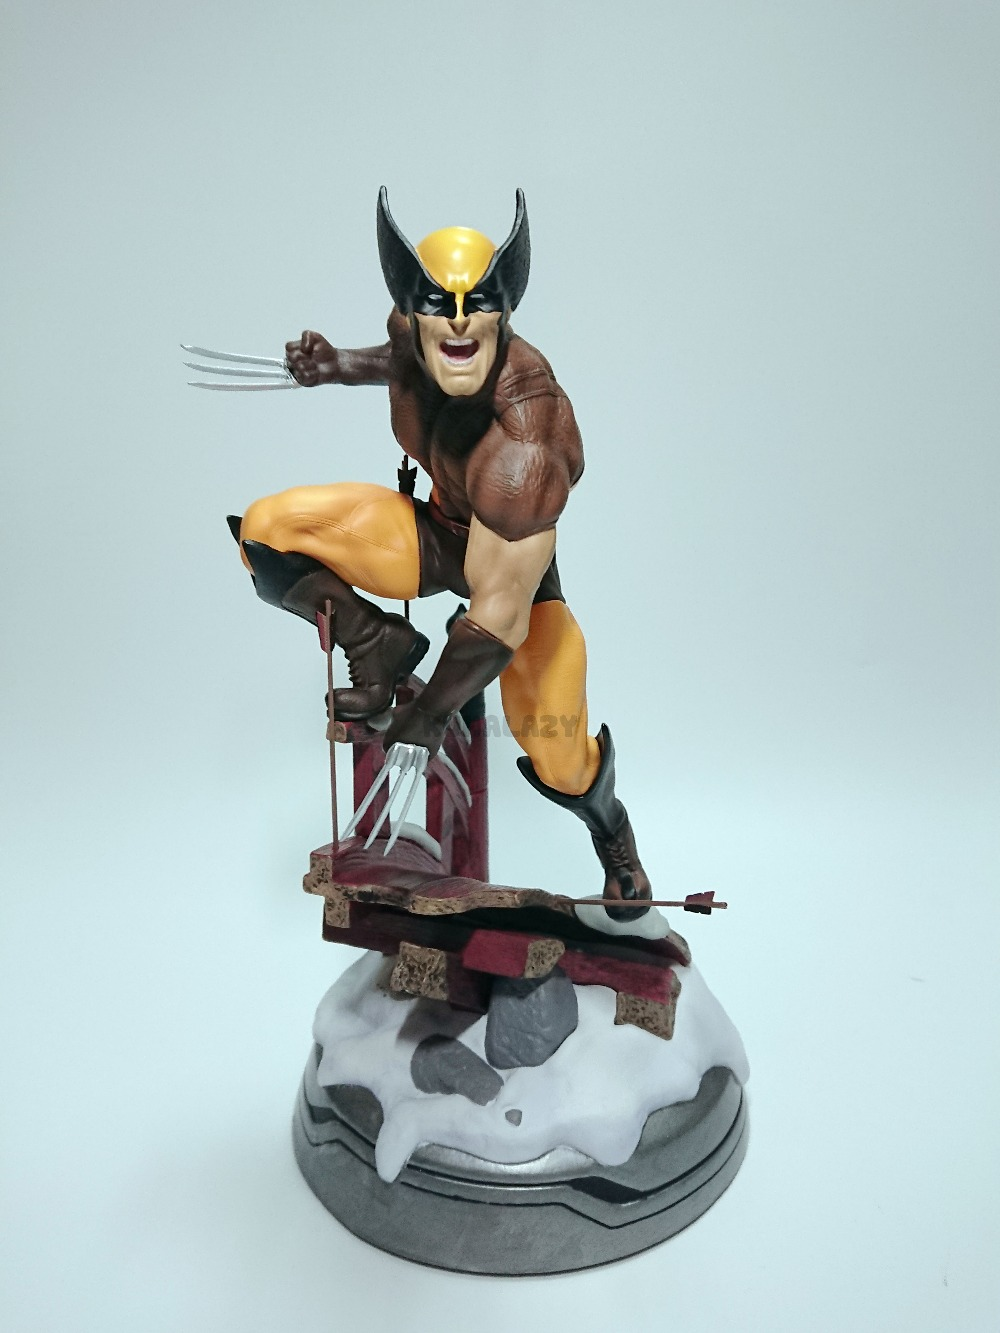 Wolverine Figure Logan Justice League ARTFX+ X Force Statue X MEN Weapon X Iron Man Action Figure Model Collection Toy x men wolverine bust action figure logan resin statue wolverine collectible model toys bust toy doll gift